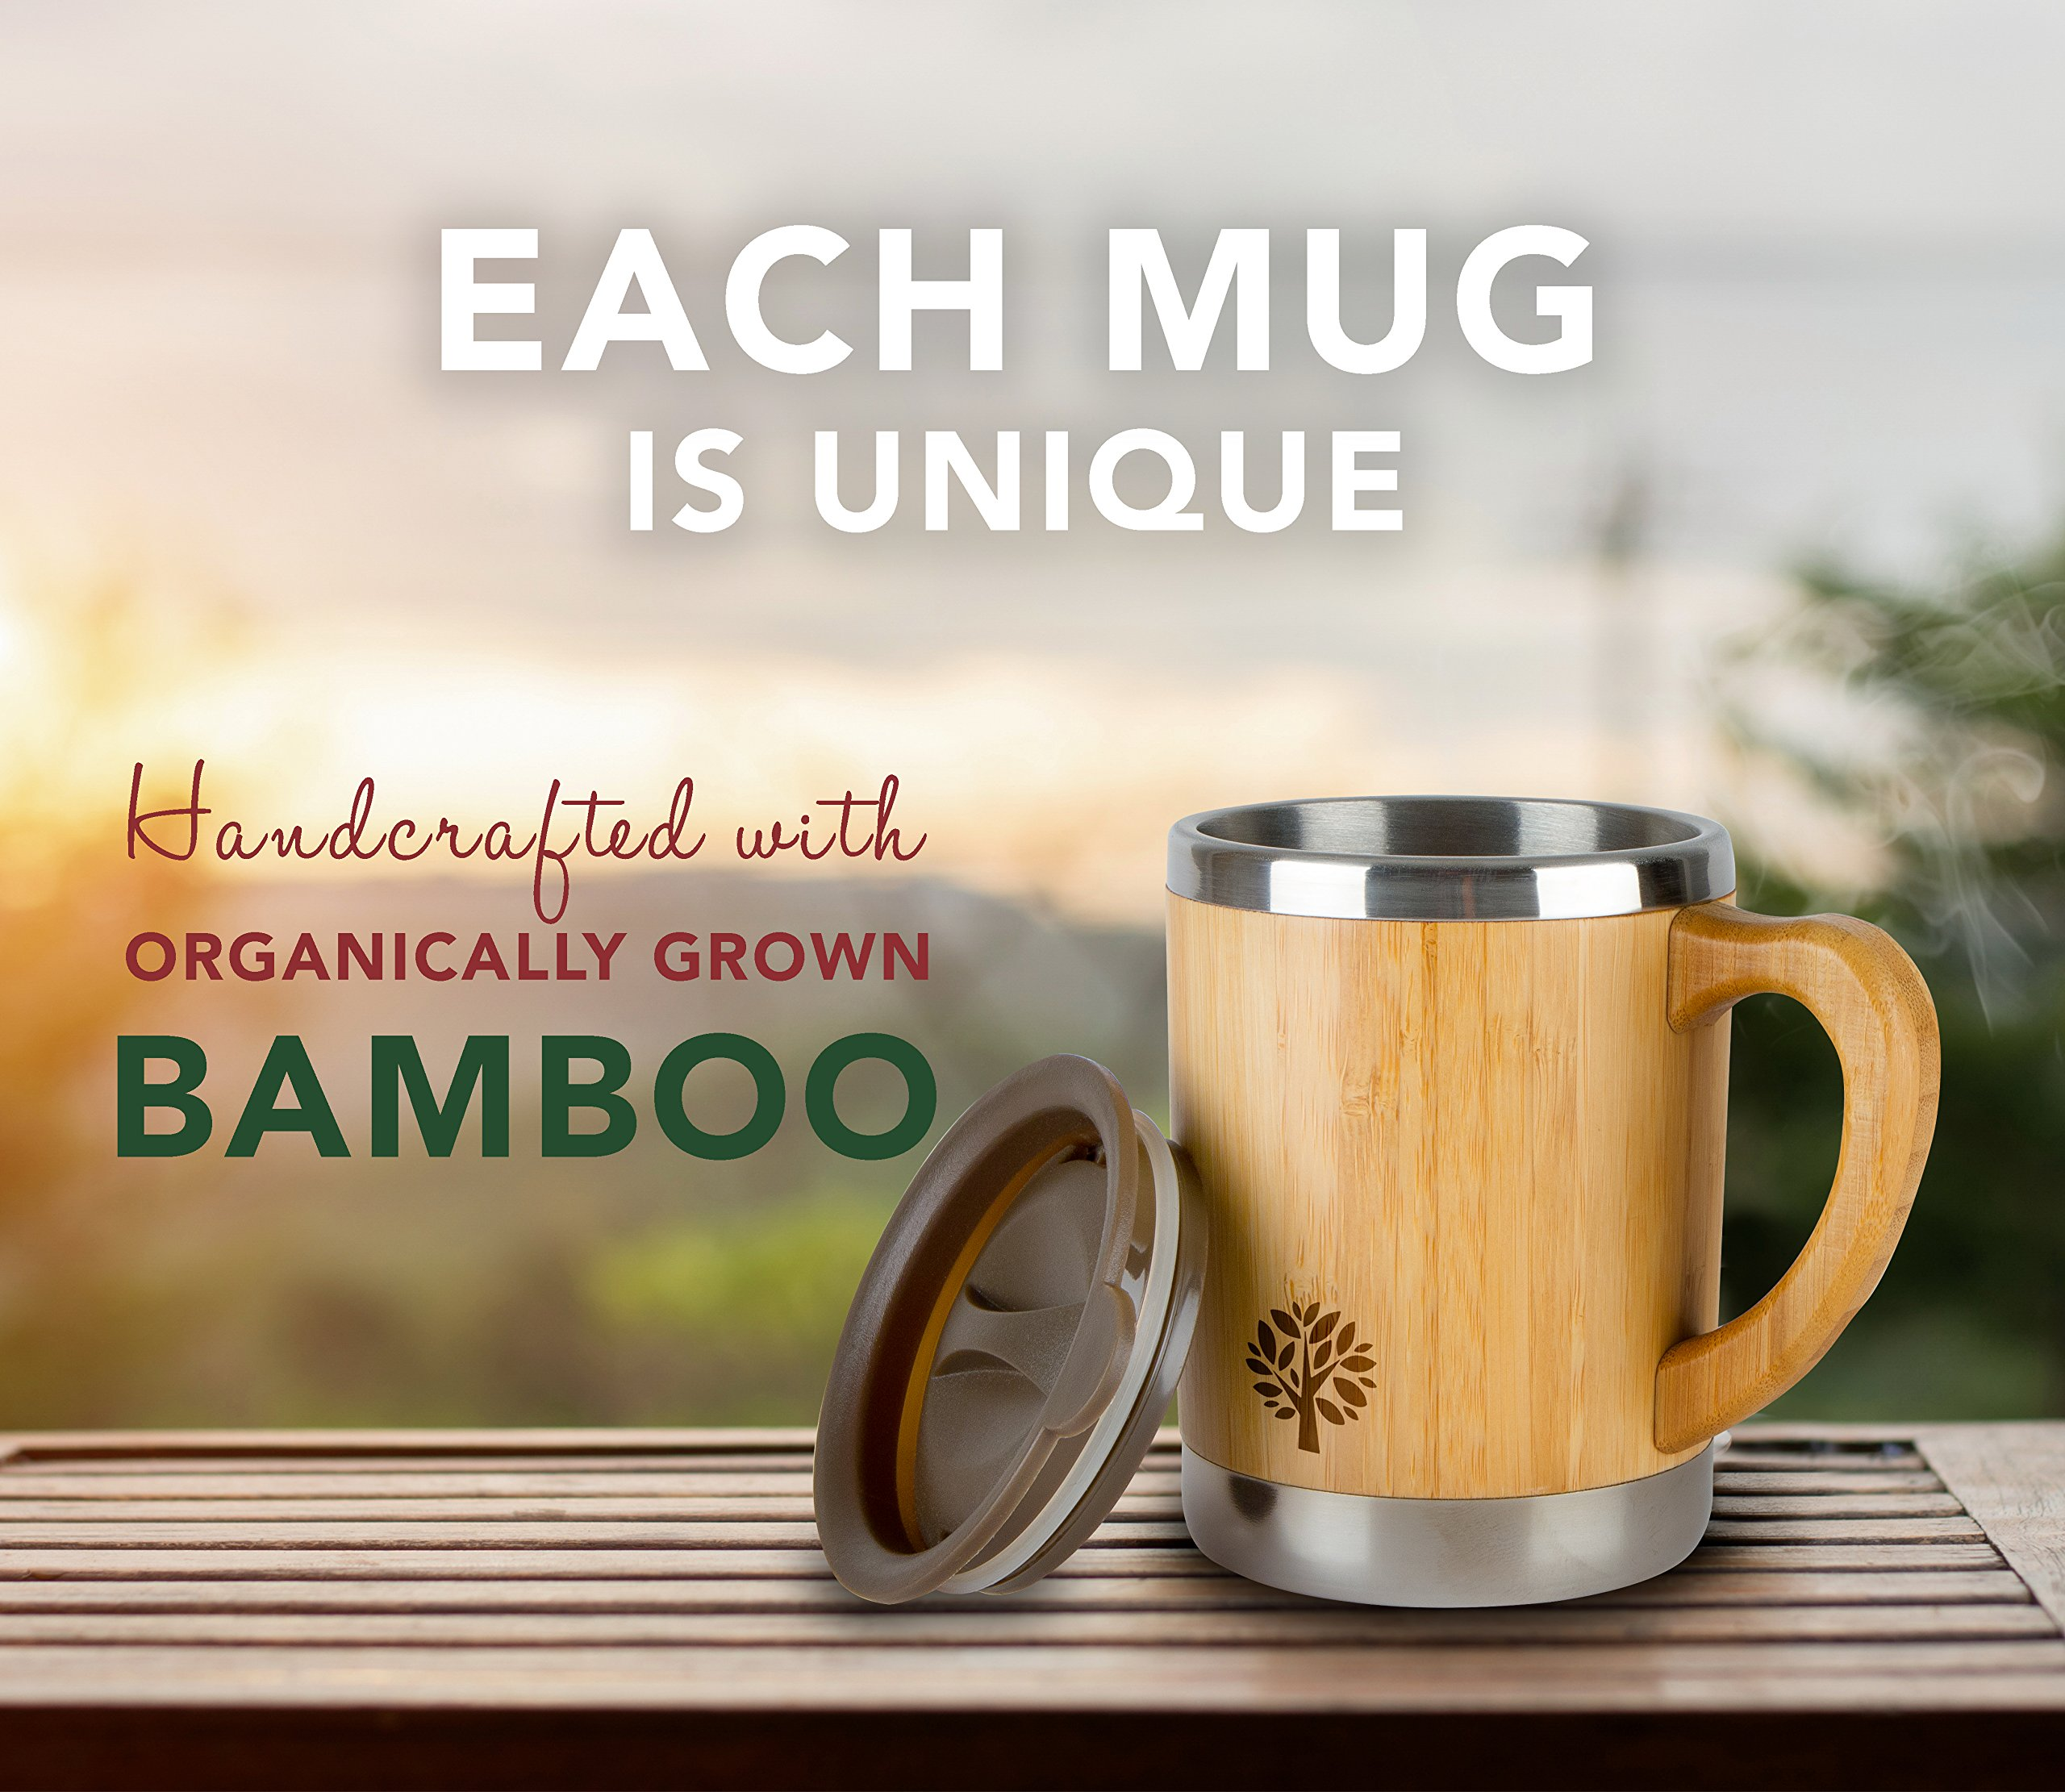 Stainless Steel & Bamboo Coffee Mug - Insulated Wooden Cup with Handle & Lid - Non-Spill On the Go - Keep Your Tea Hot Longer - Unique Gift for Men & Women - 11 oz / 300 ml by JJecommUS (Image #6)